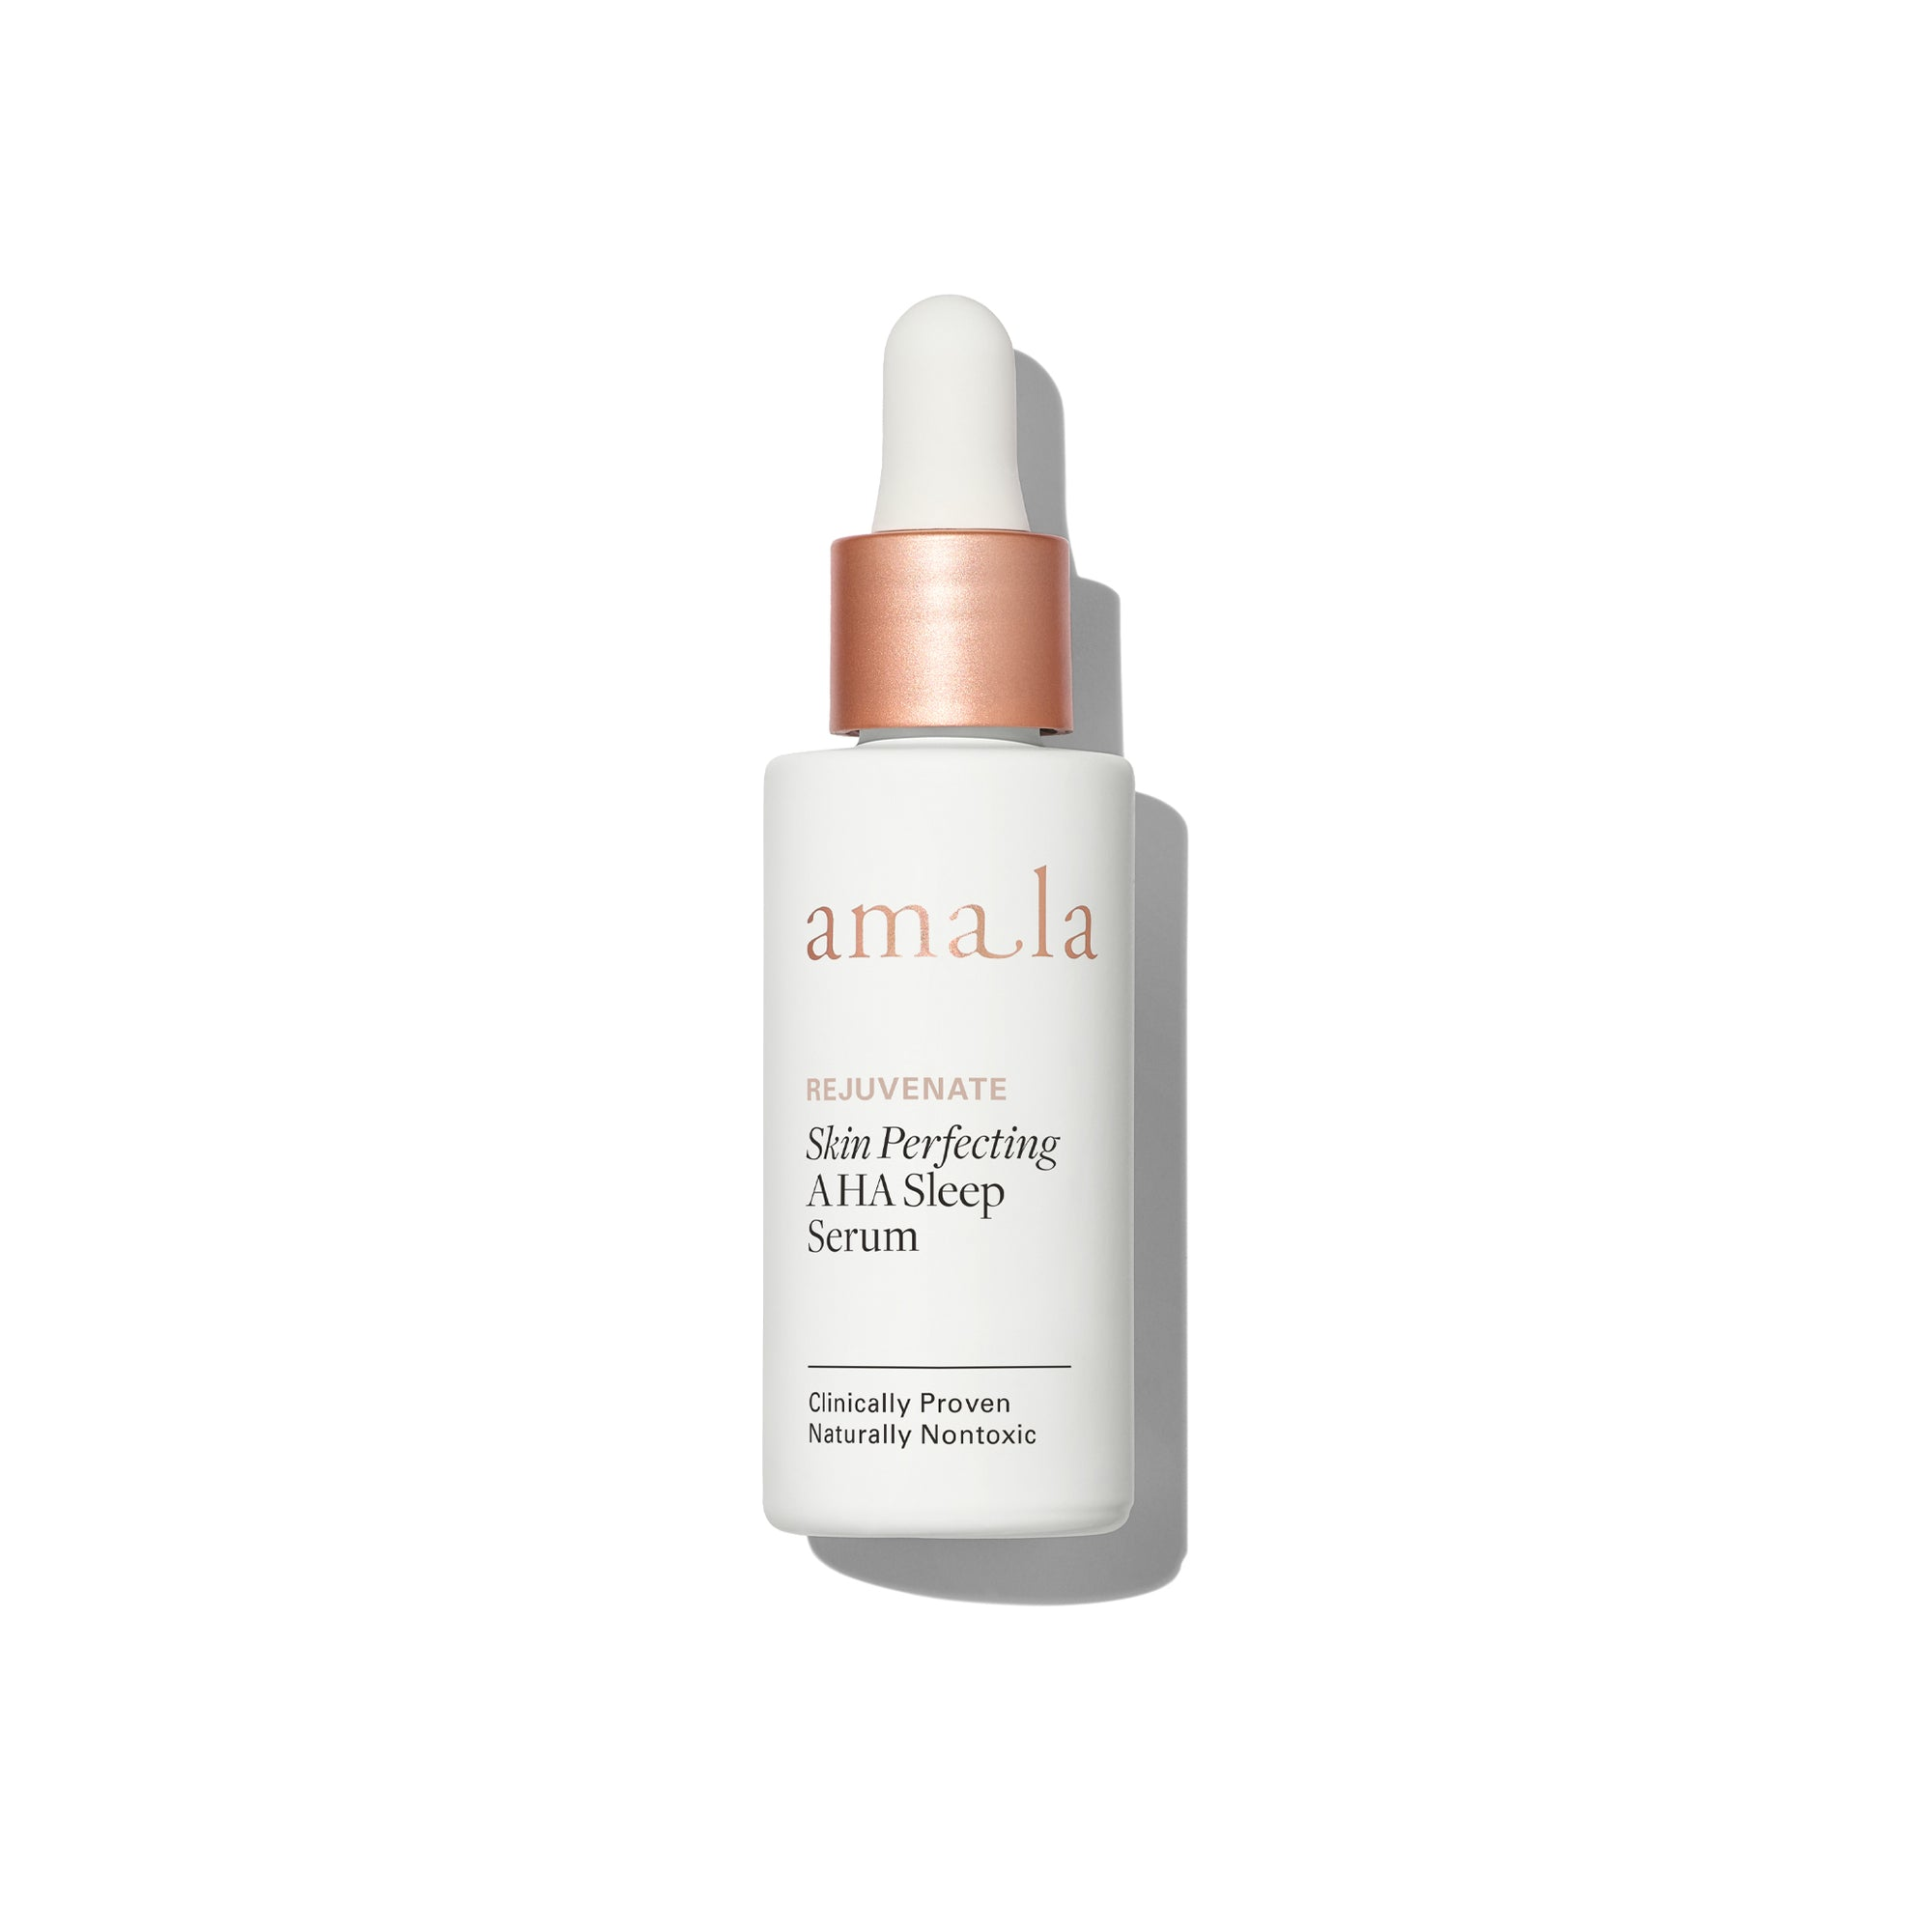 Skin Perfecting AHA Sleep Serum